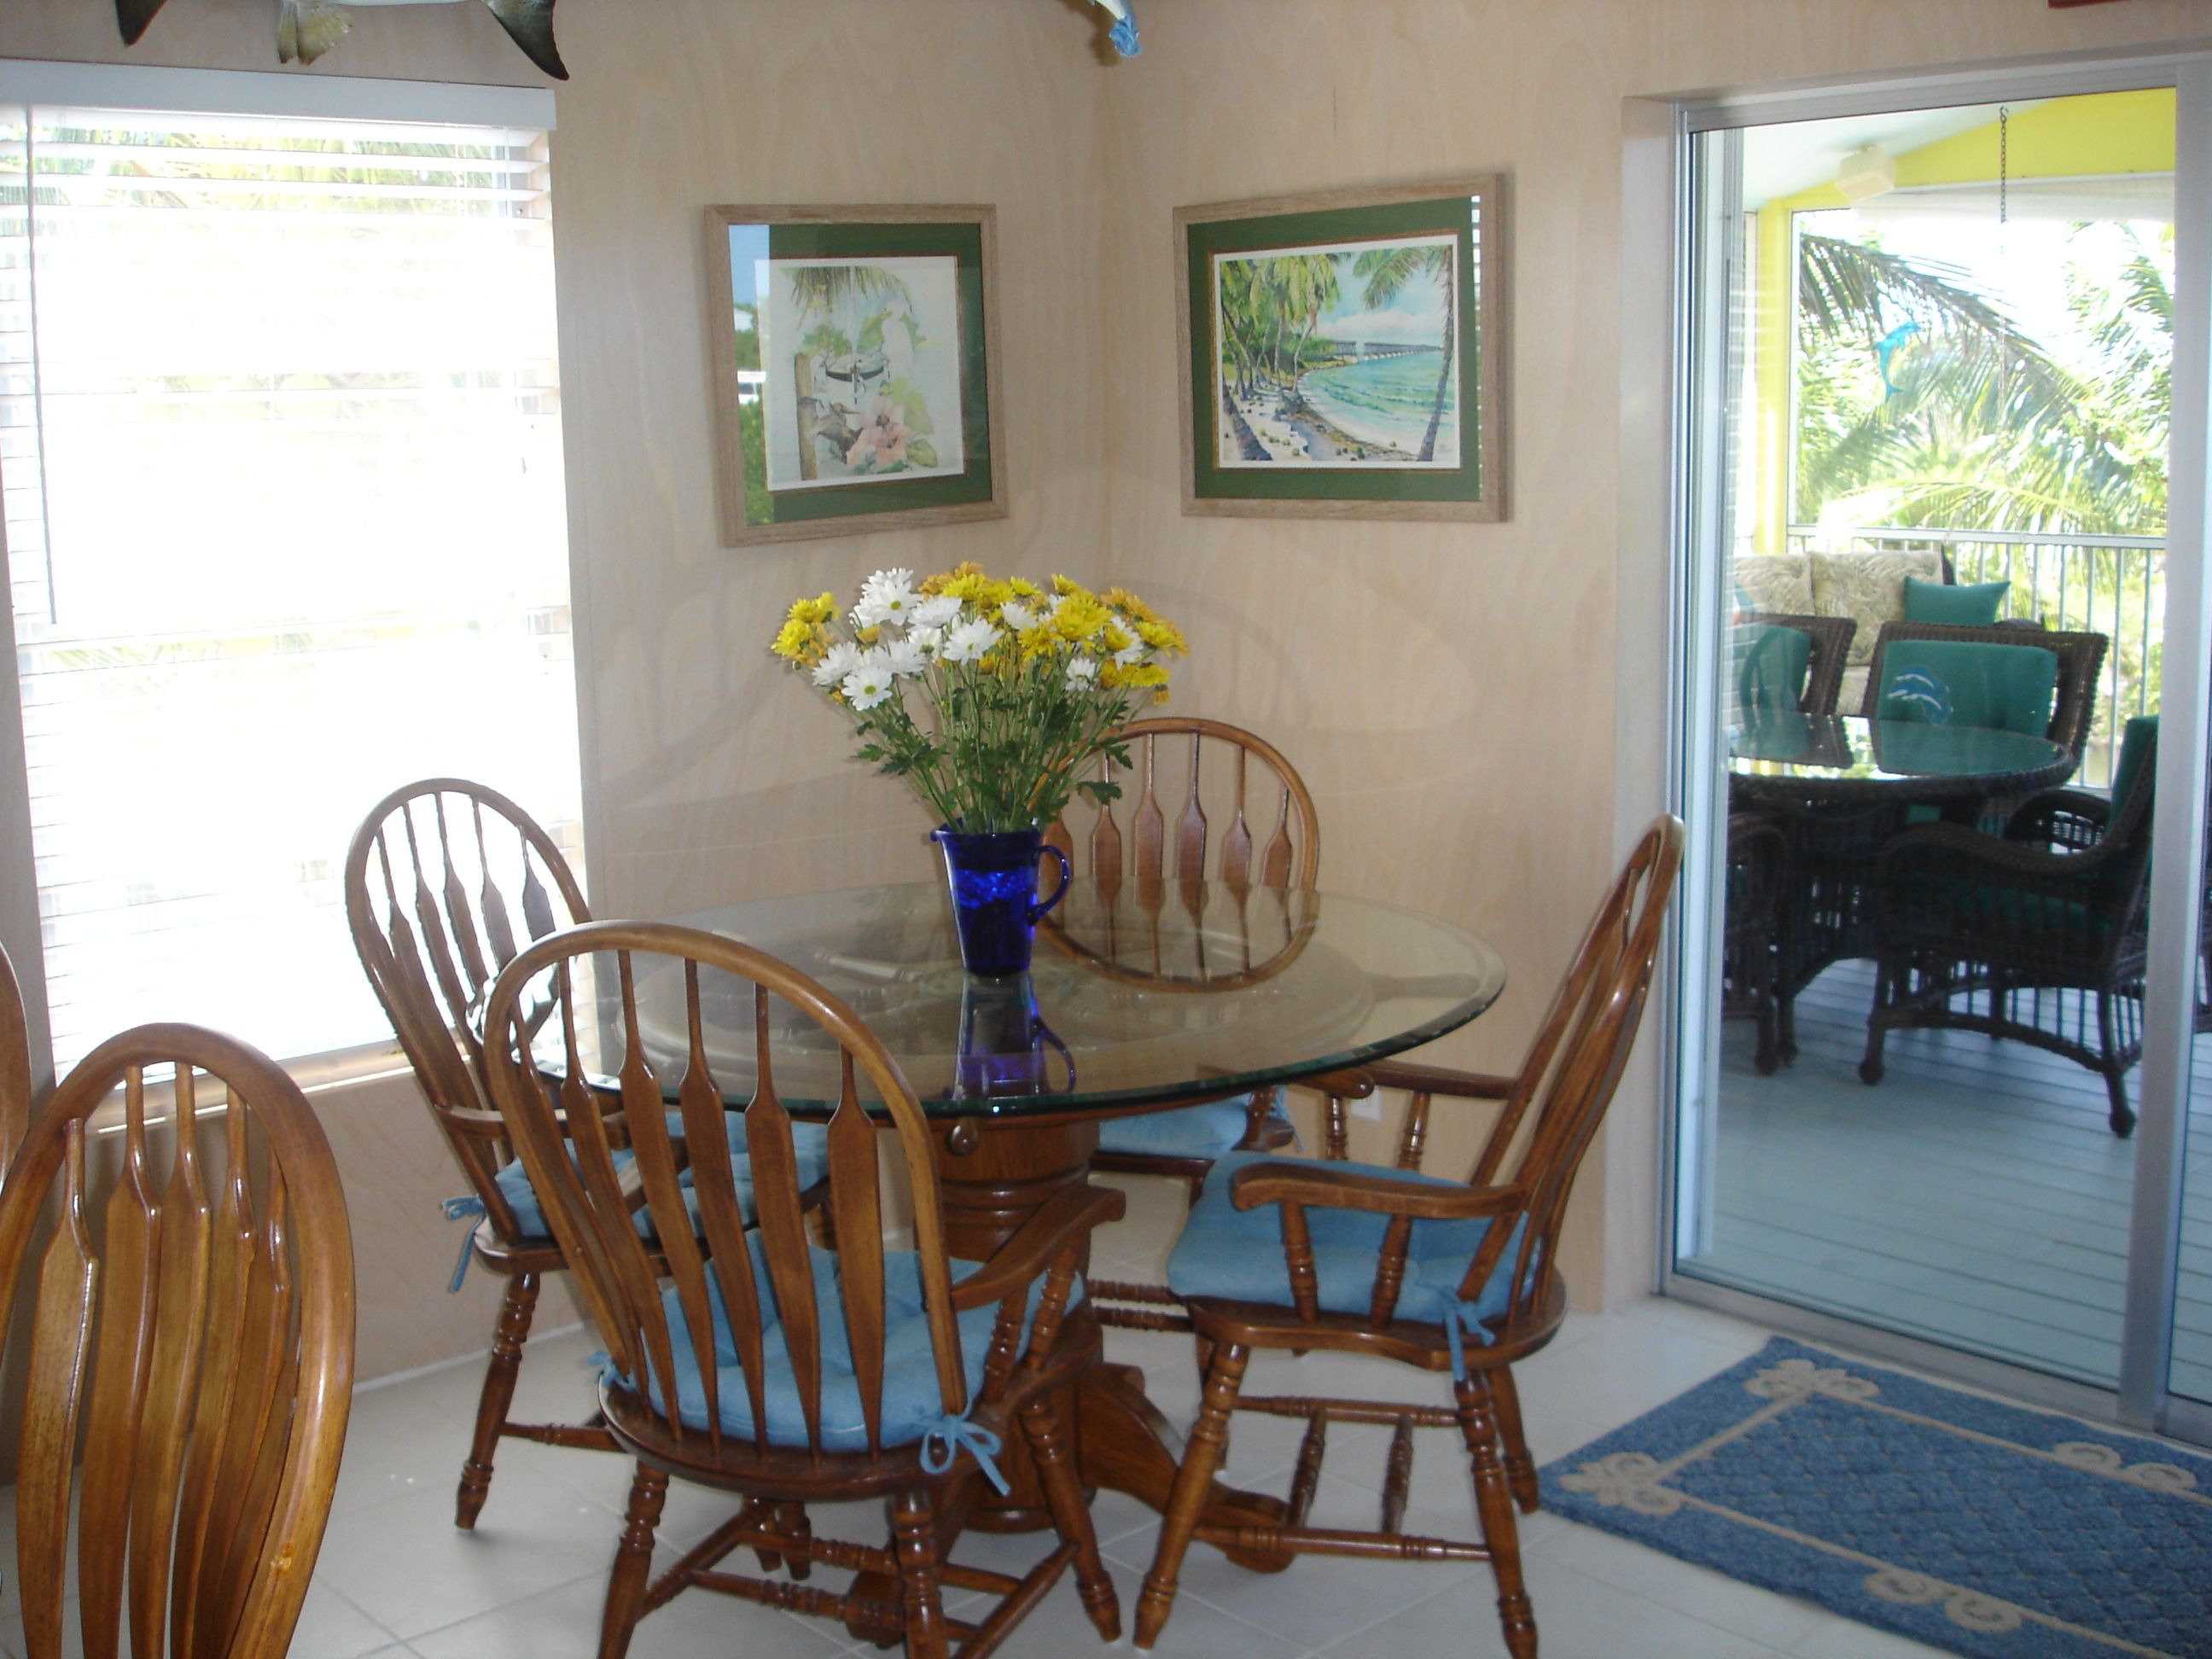 Dining area florida keys vacation home decorating ideas Florida home decorating ideas